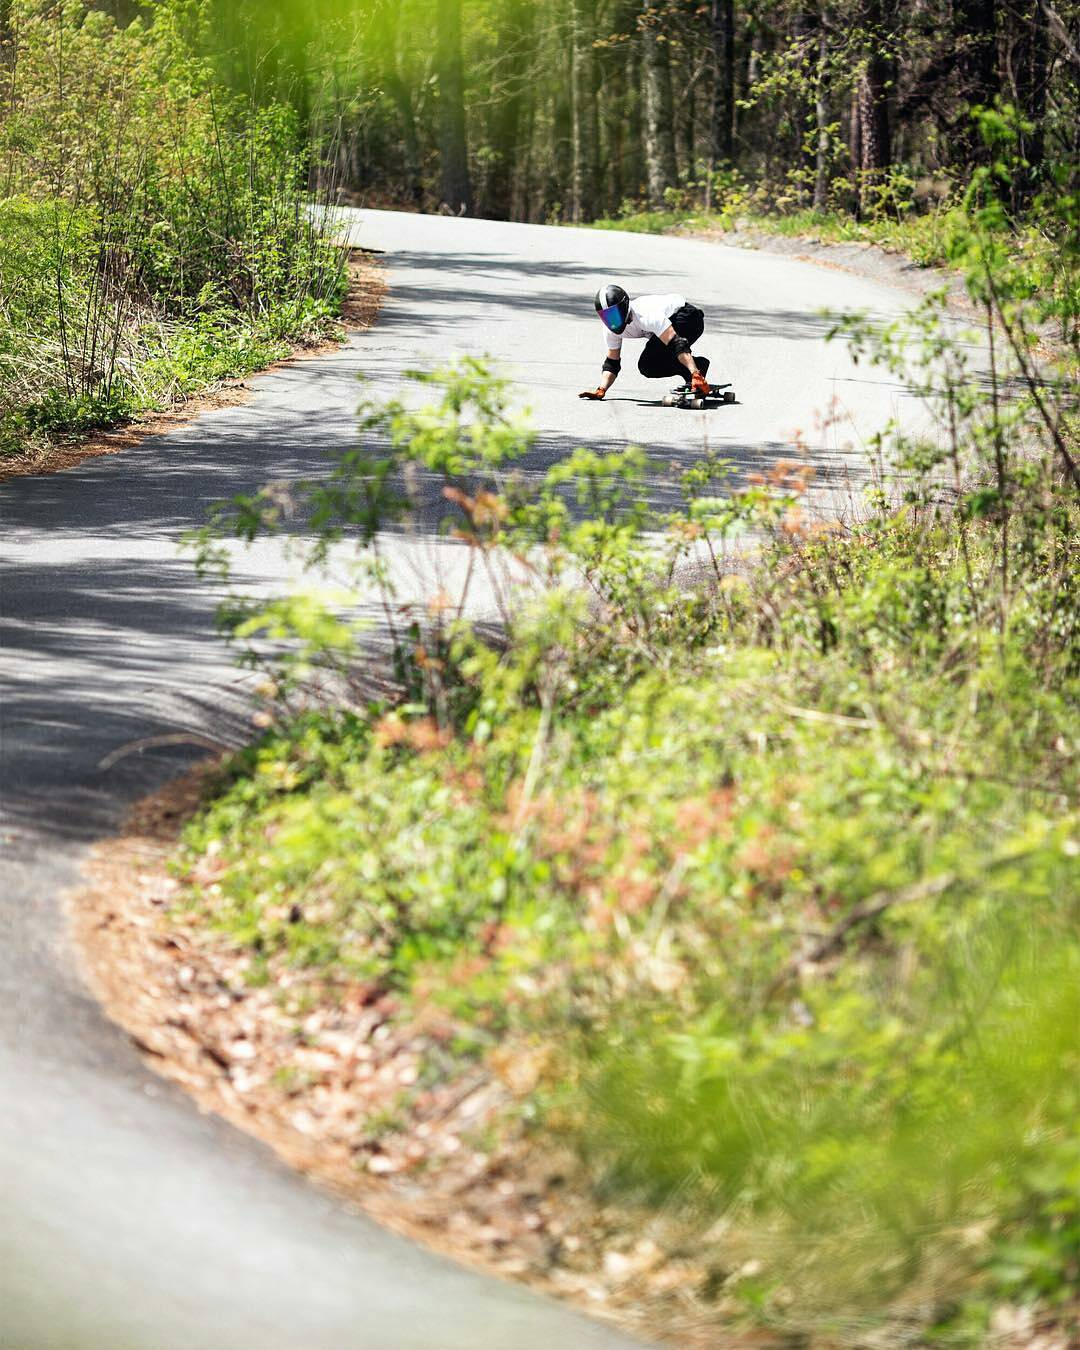 #PredatorHelmets Rider @niko_dh  Hitting some 'S' bends in the lovely sunny weather.